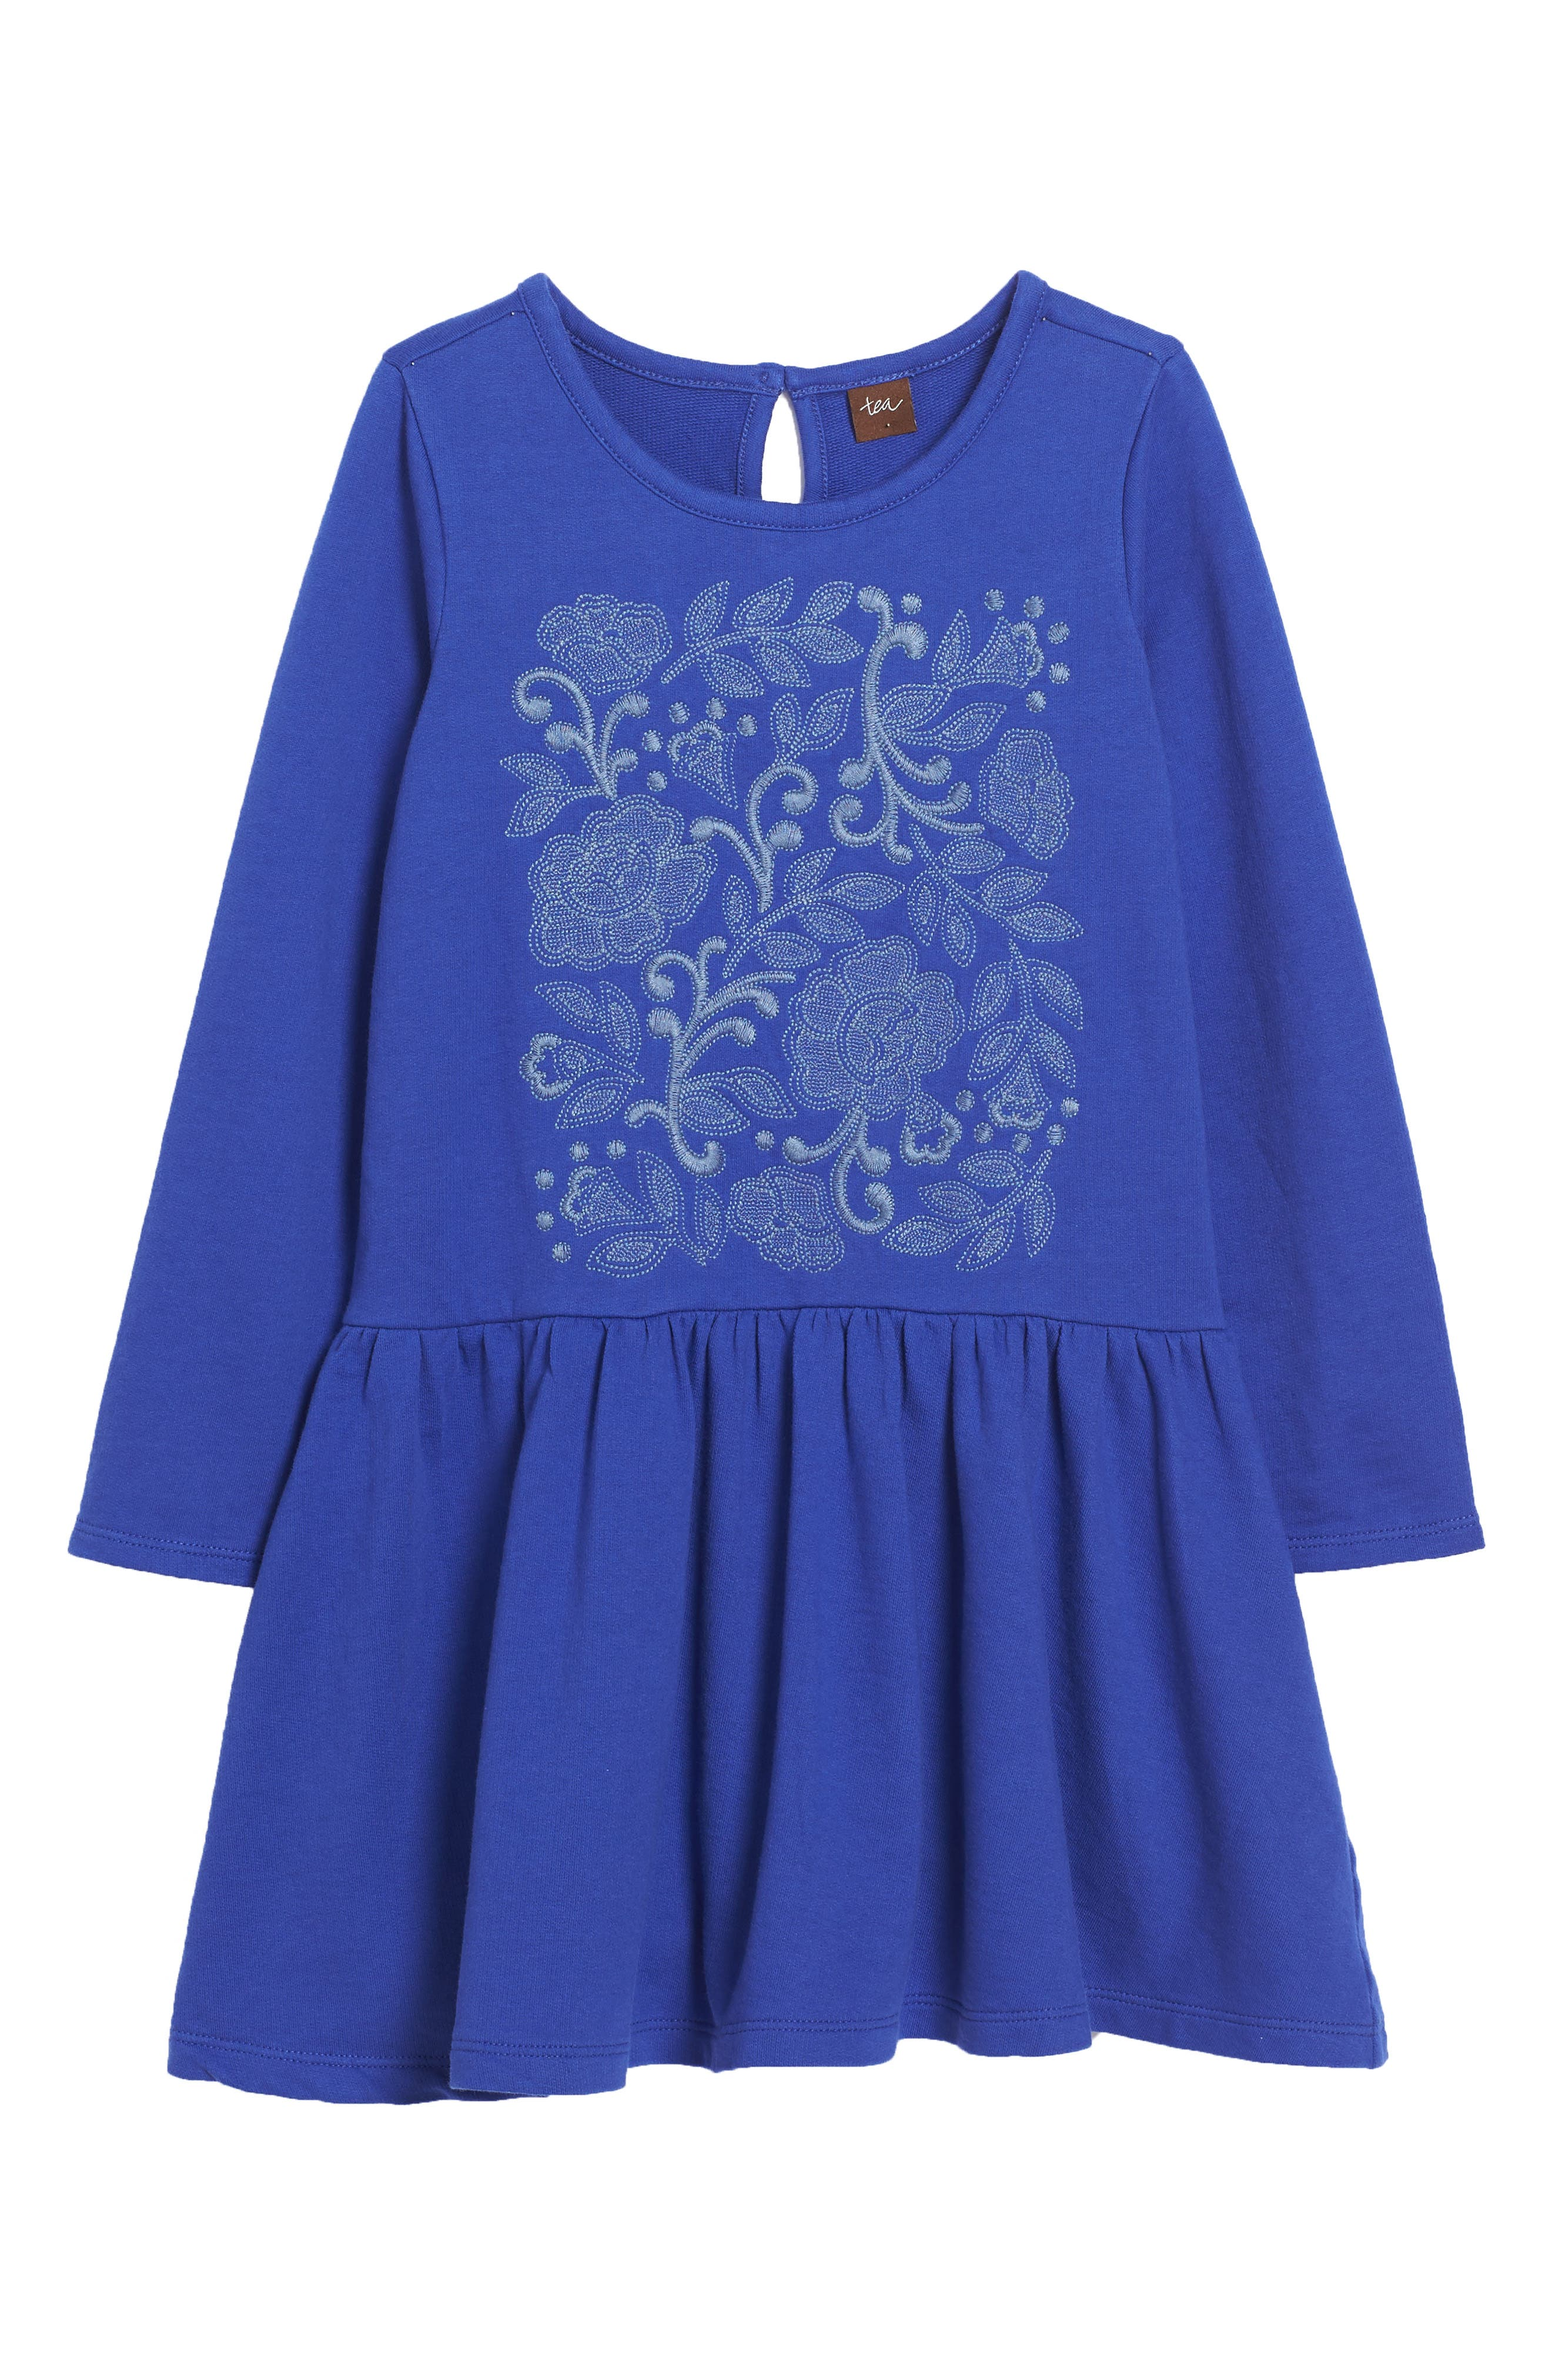 Feather & Fan Embroidered Drop Waist Dress,                             Main thumbnail 1, color,                             494